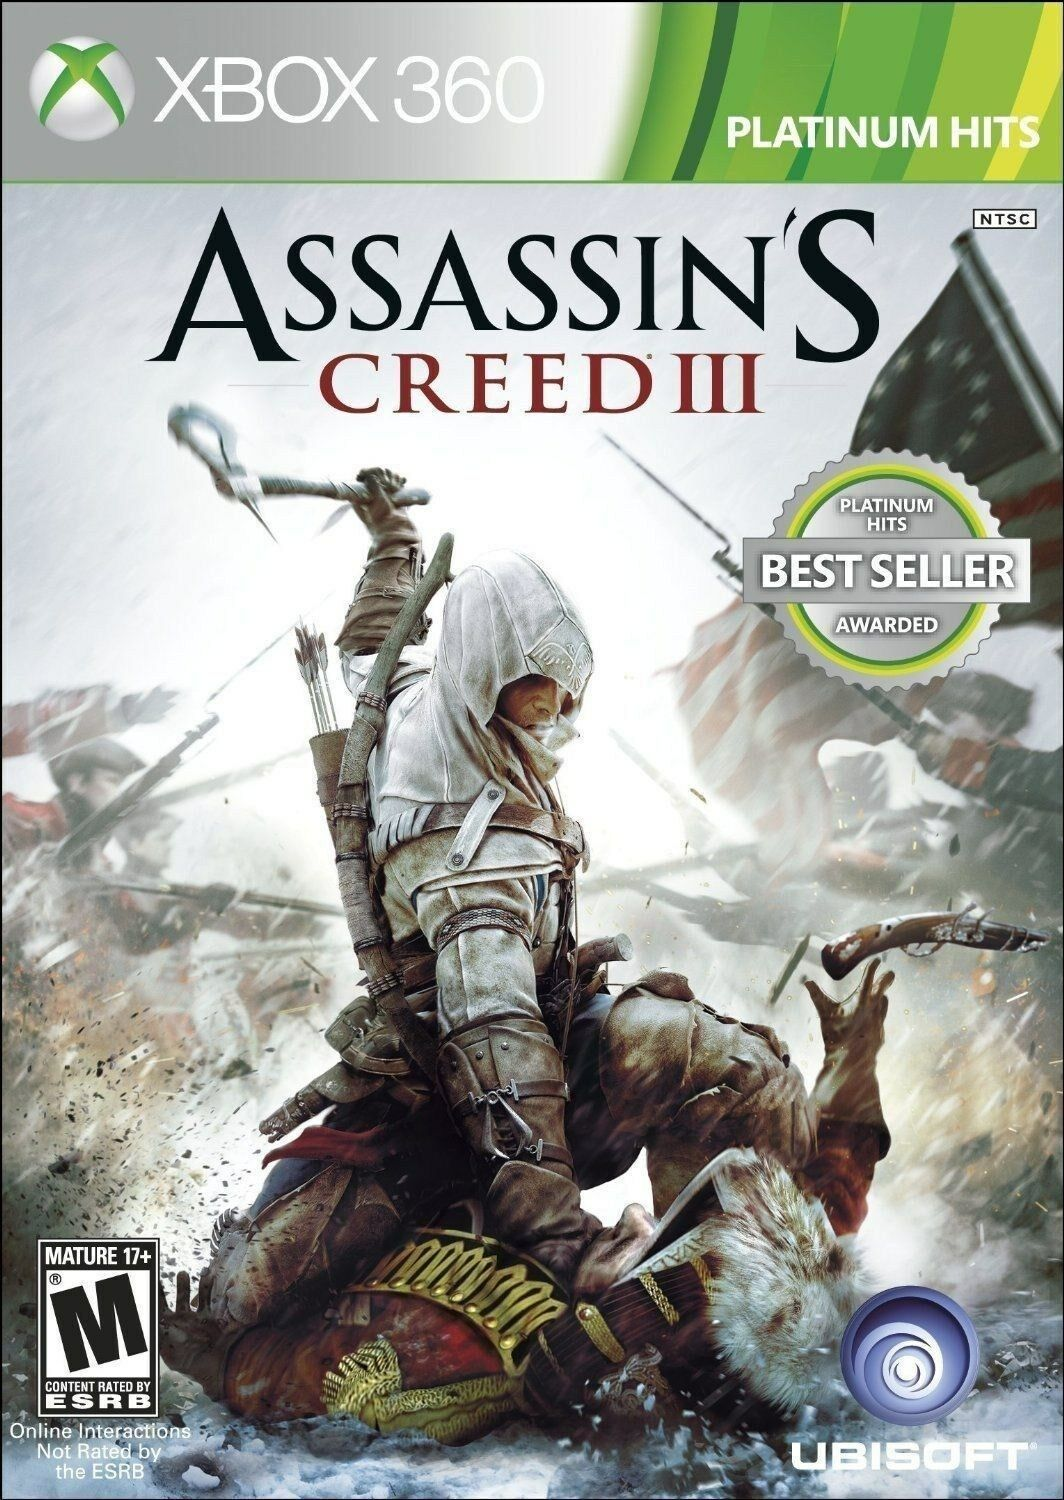 Xbox 360 Games - XBOX 360 GAME ASSASSIN'S CREED III 3 BRAND NEW & FACTORY SEALED